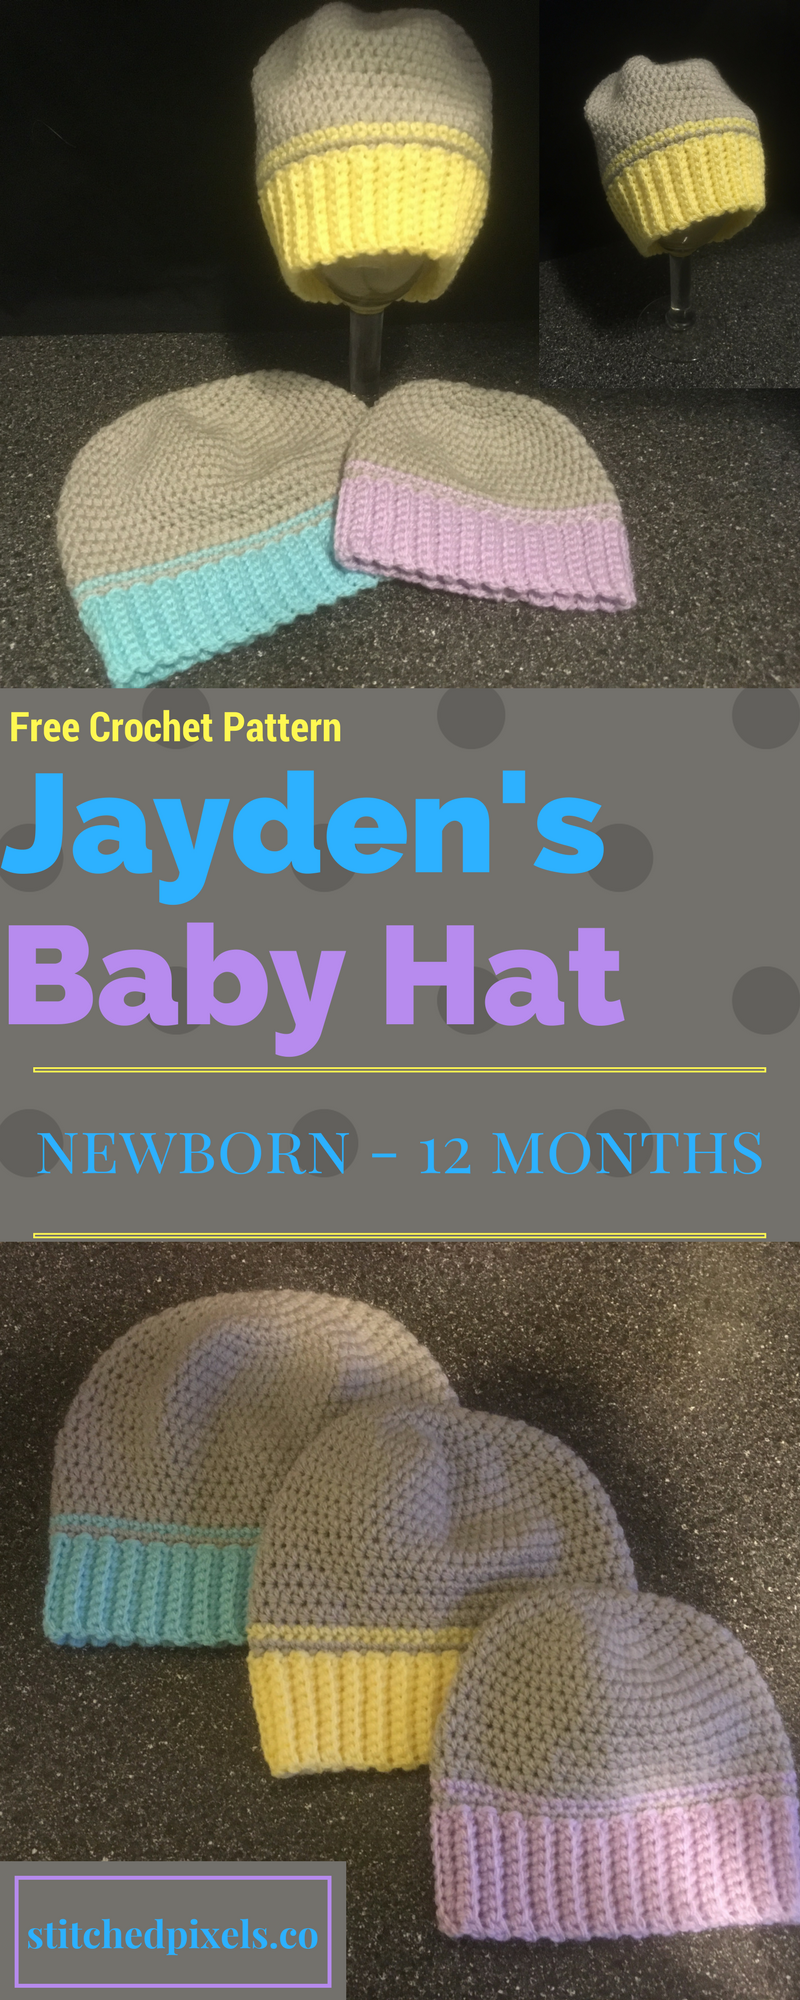 This is the first piece in my new 3 part Jayden s Baby Set of crochet  patterns ddd7e46295a5